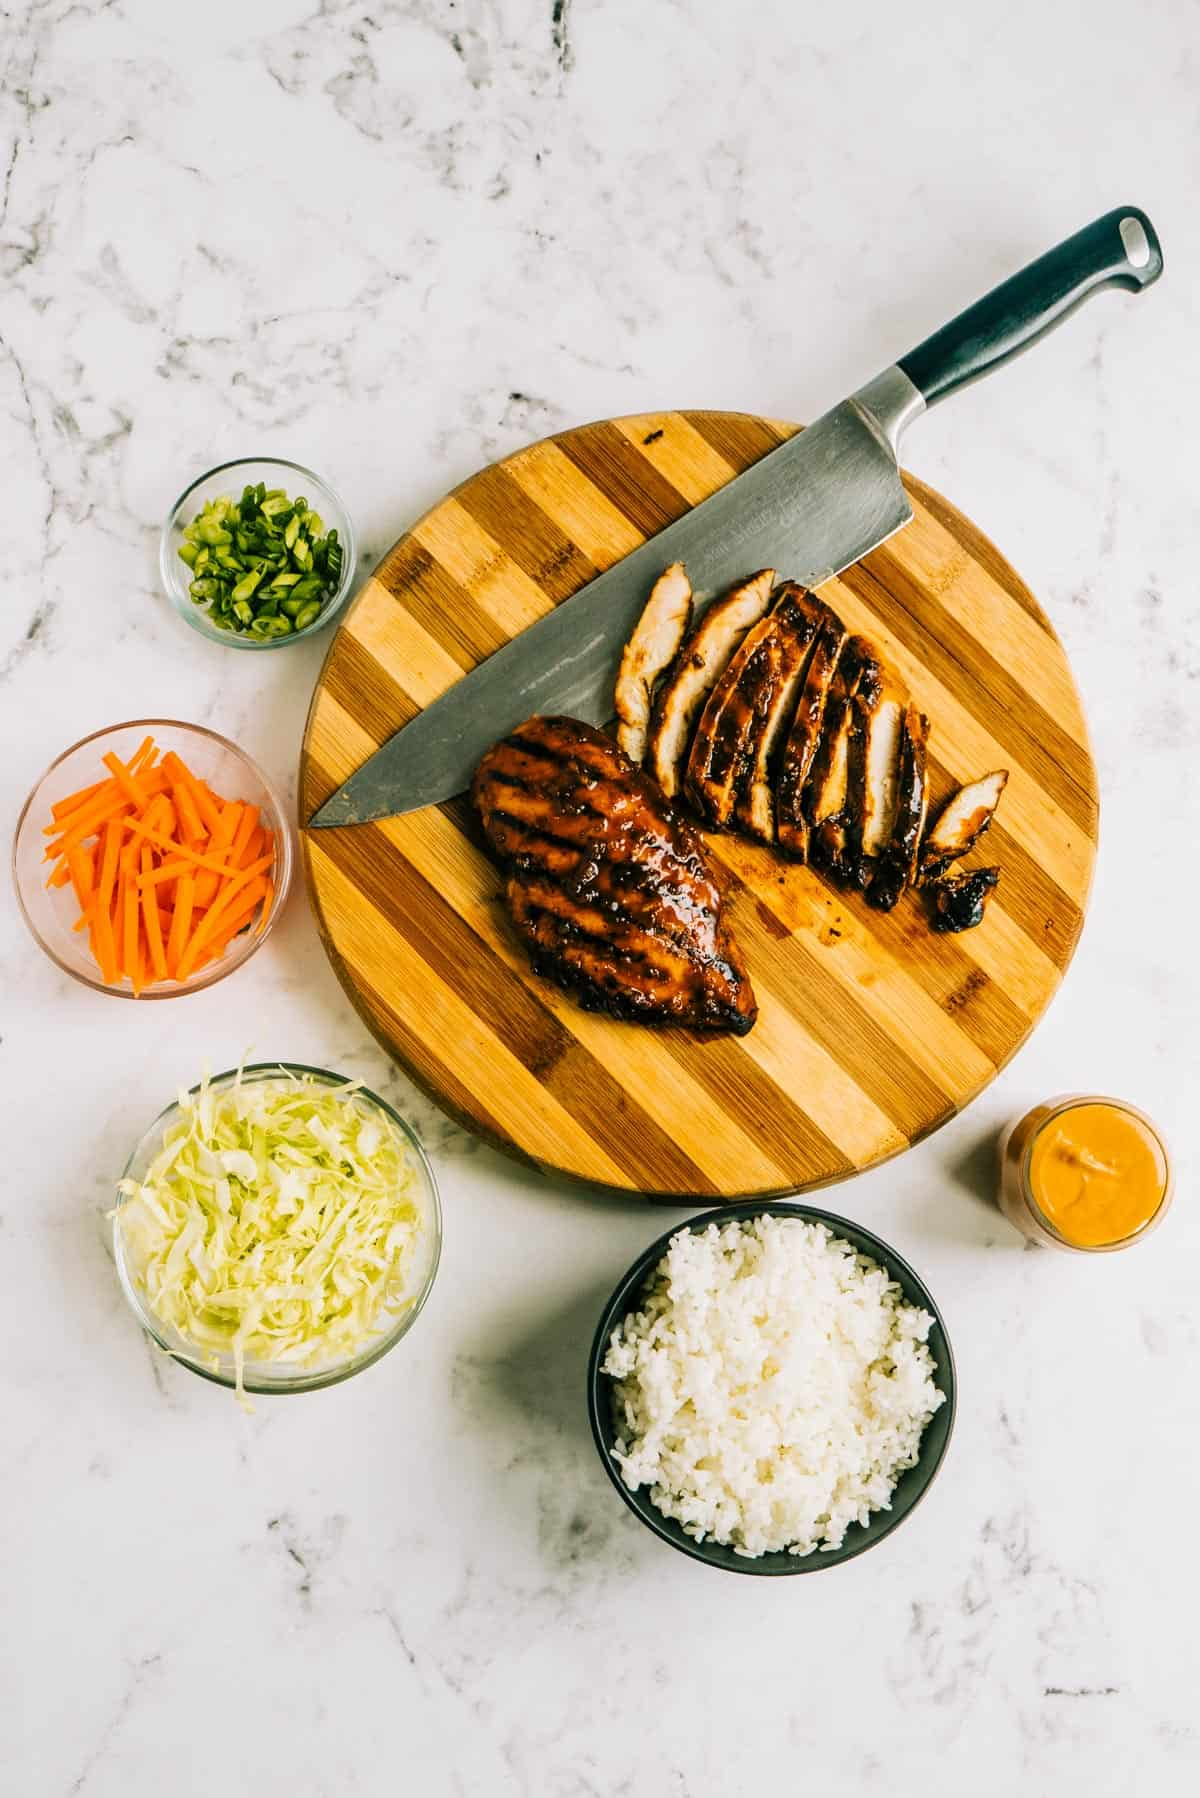 Overhead view of grilled chicken on a cutting board and rice bowl ingredients